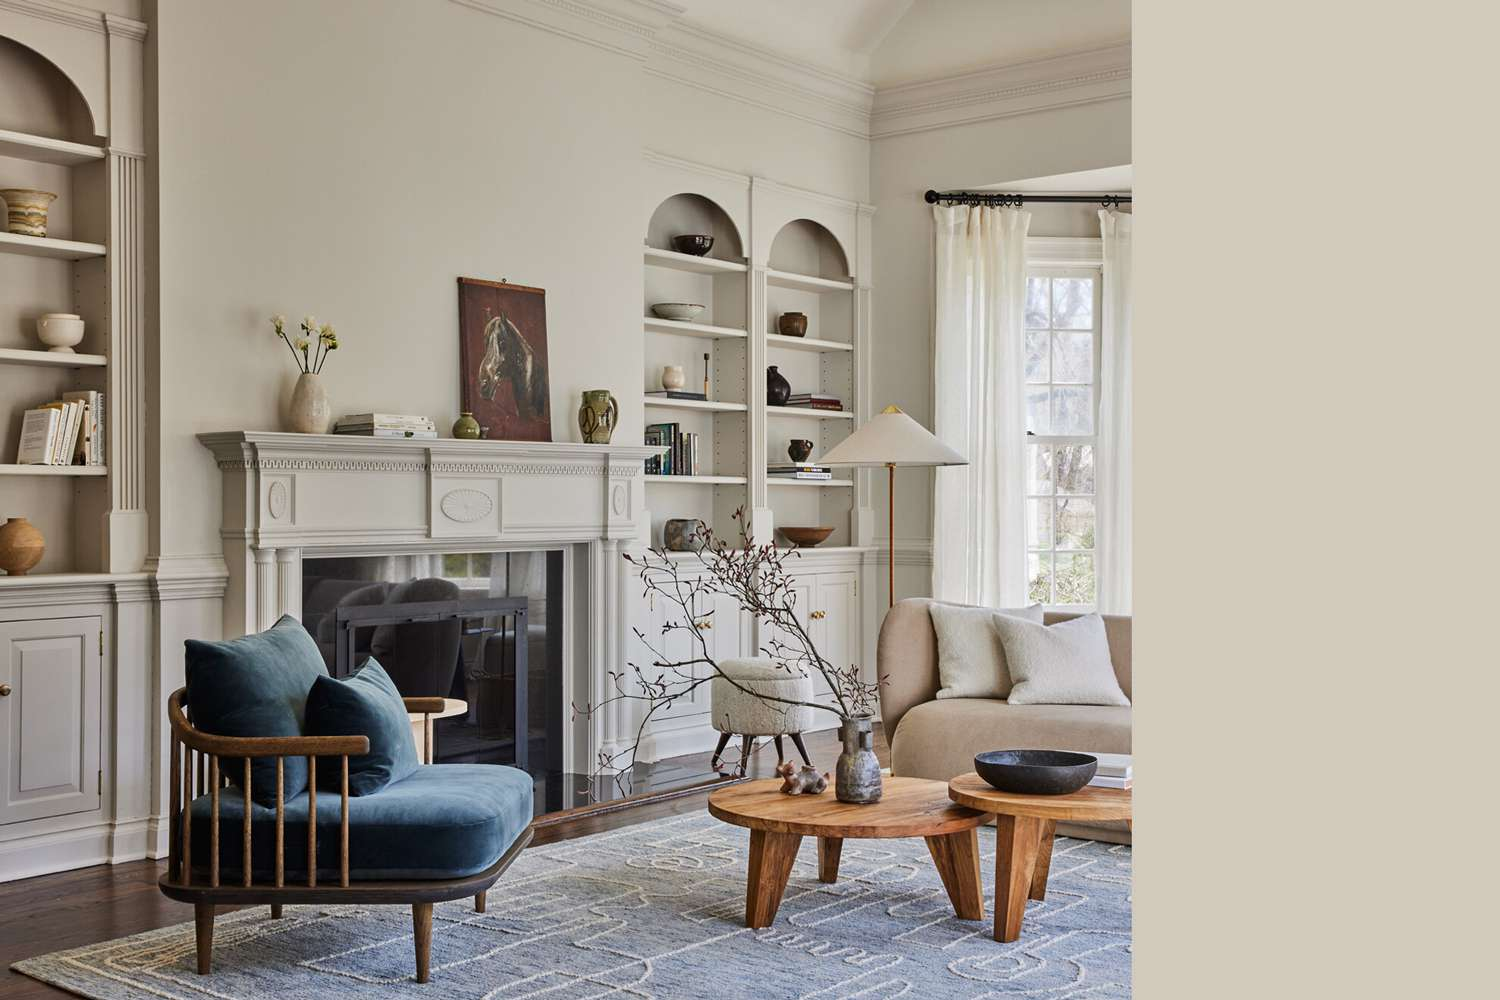 Interior painted a similar color to Glidden Moth Gray